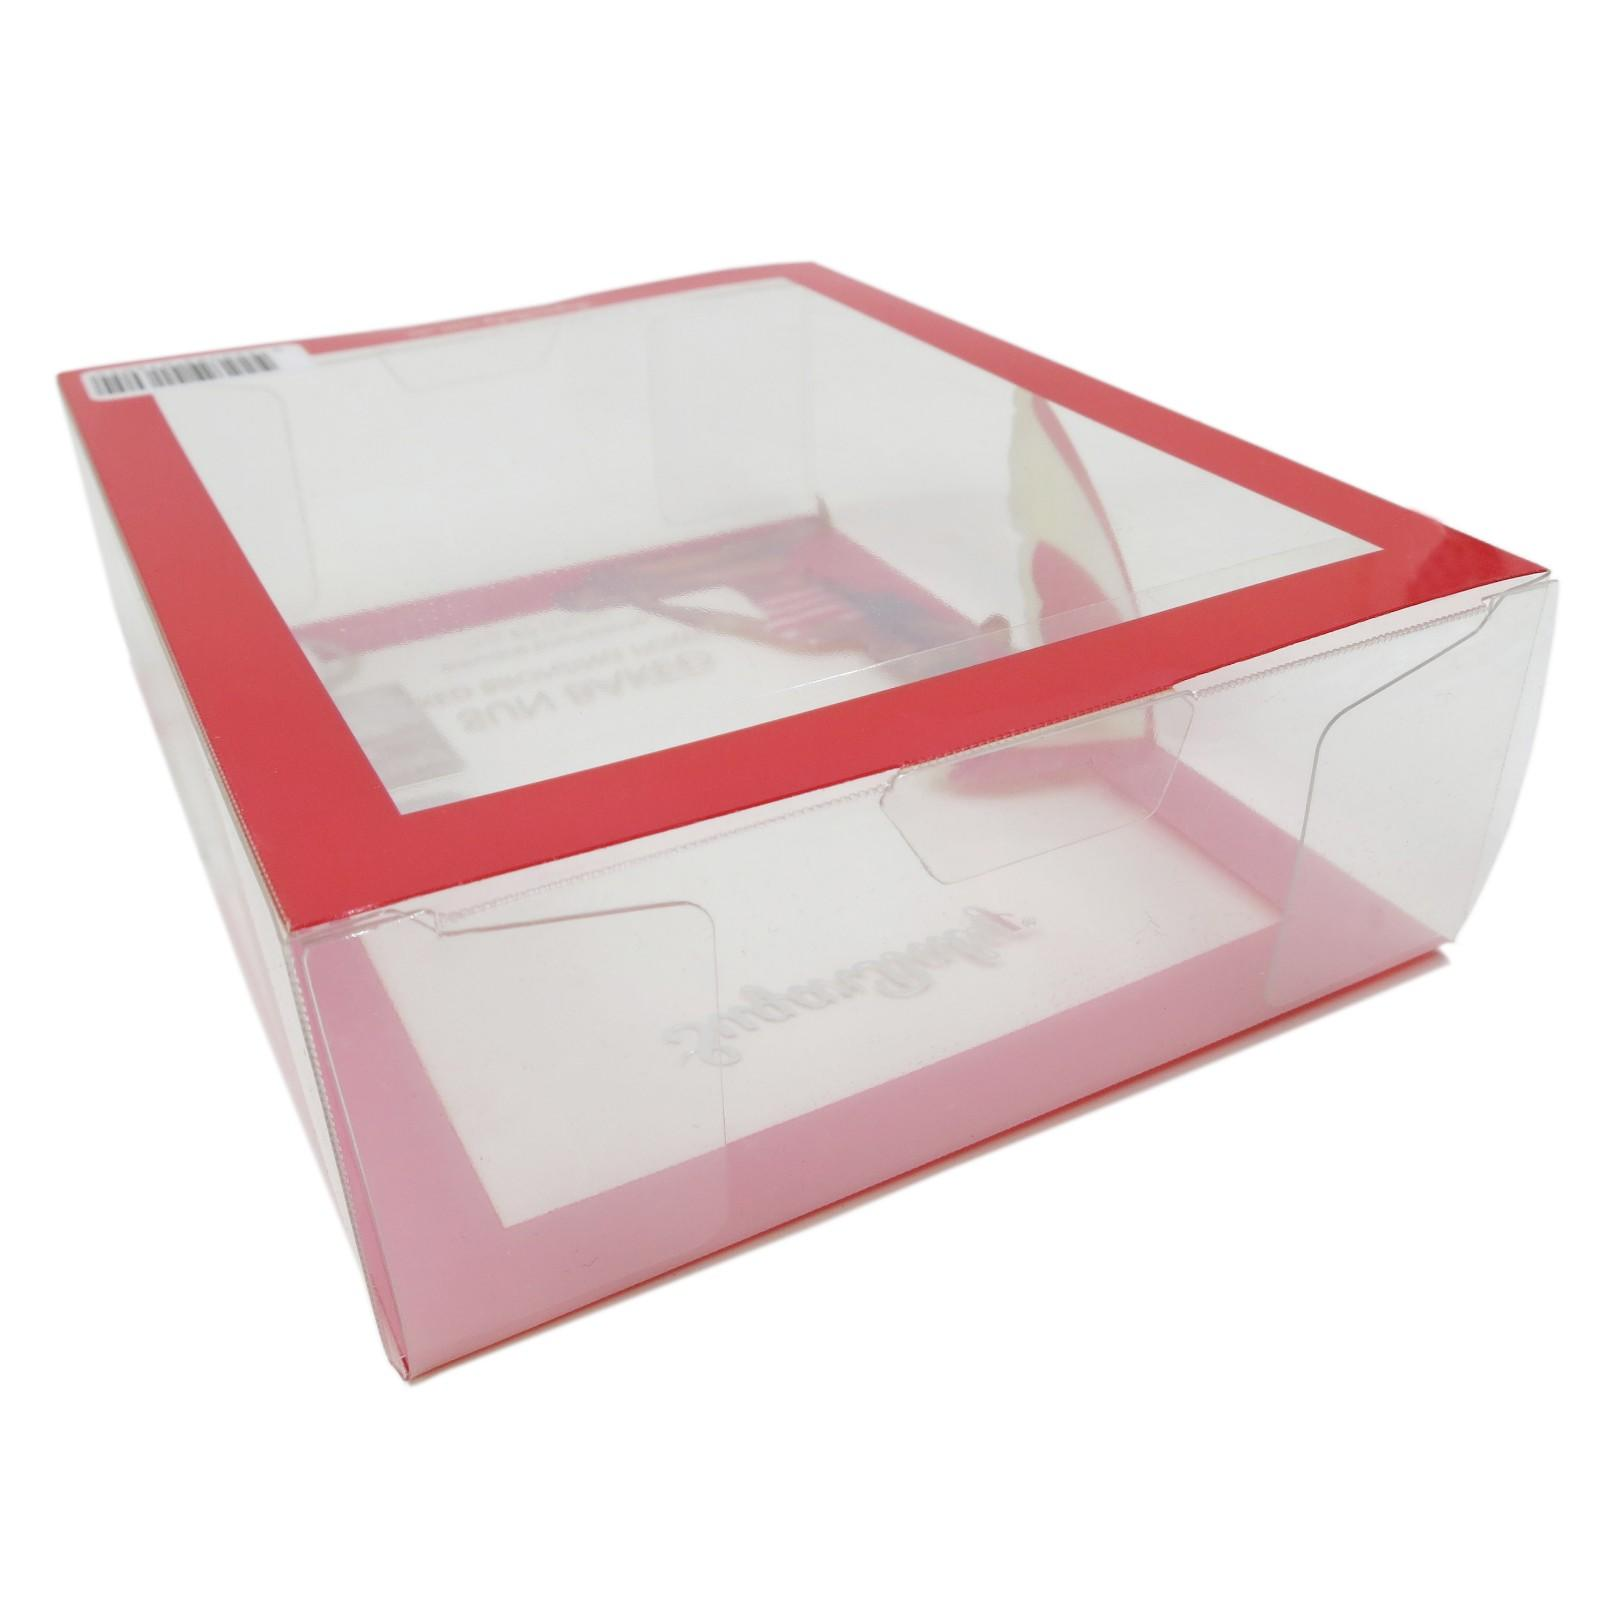 first-rate plastic box packaging display widely-use for food